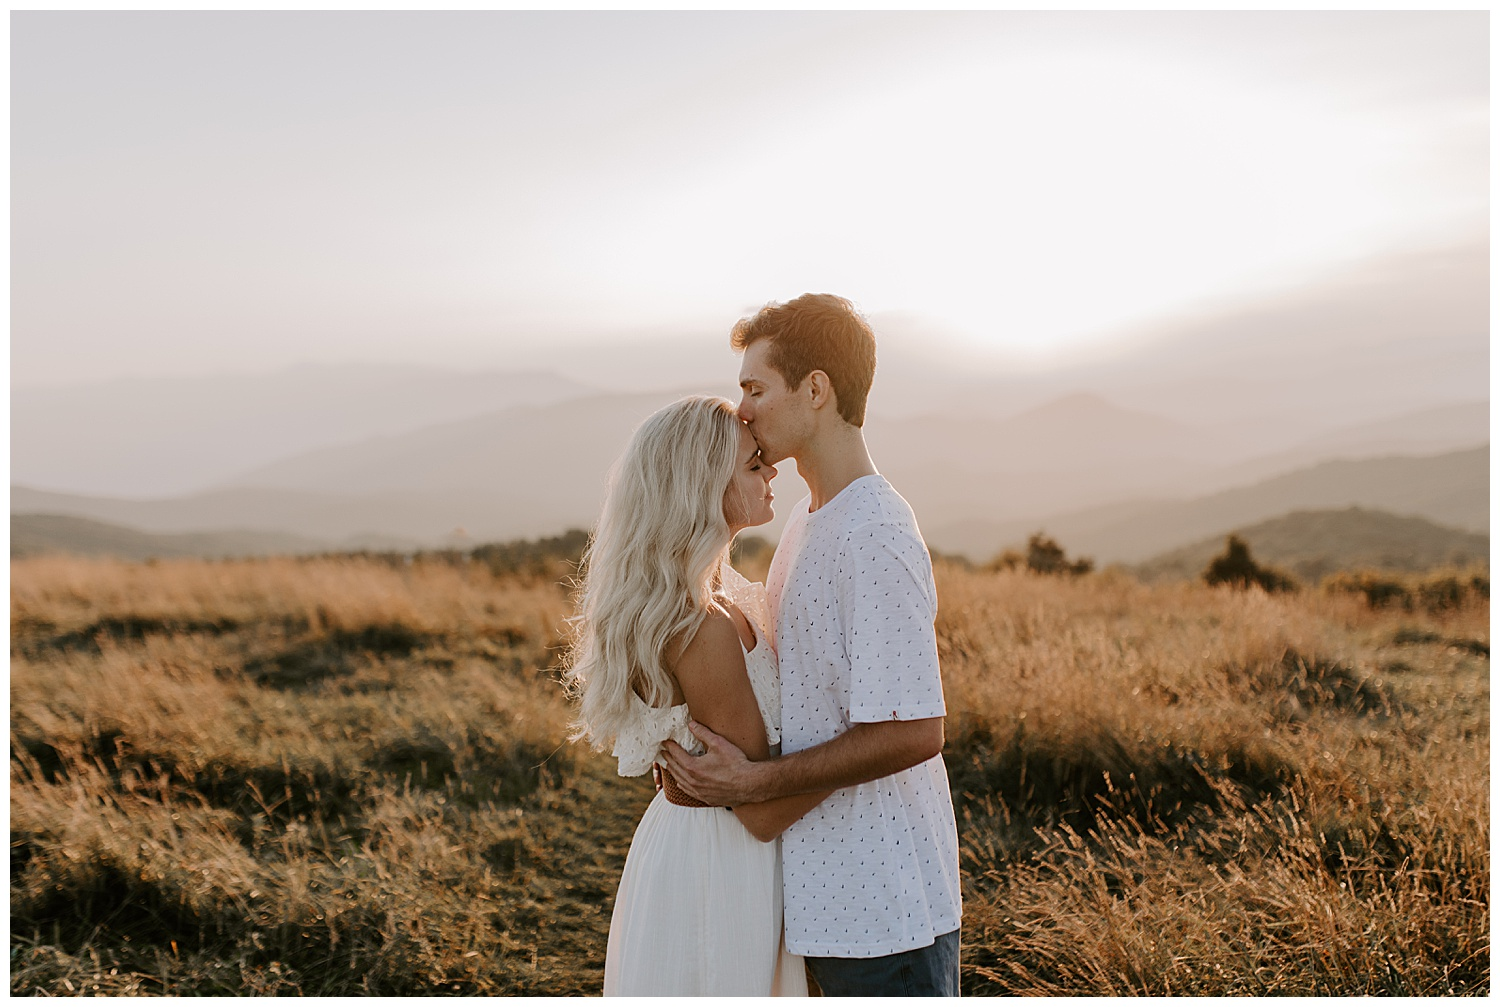 HANNAH_NICK_MAXPATCH_ENGAGEMENT2019-09-05_0017.jpg